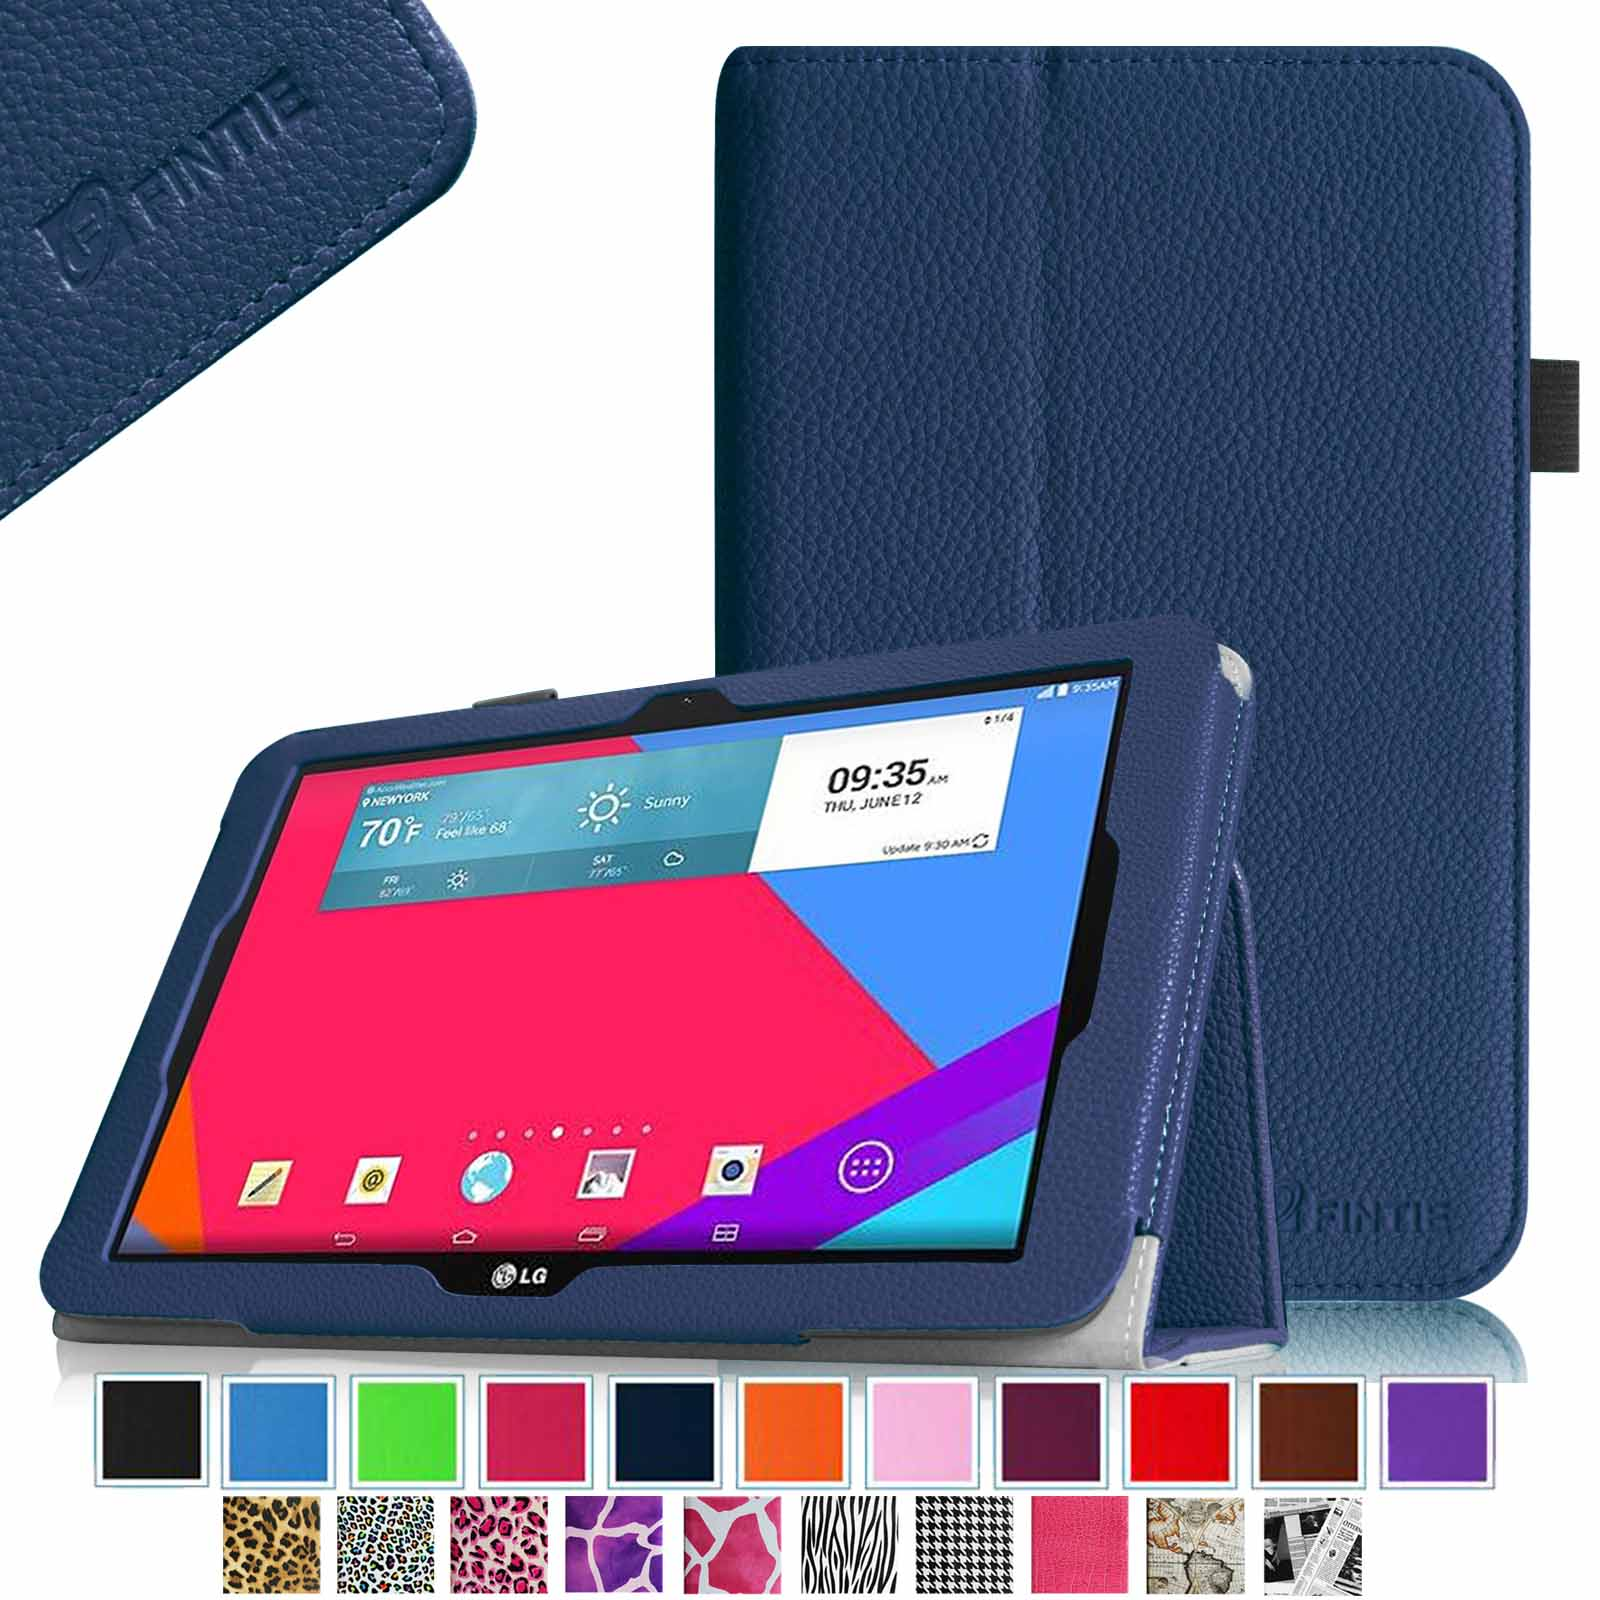 Fintie LG G Pad 10.1 Folio Case - Premium Leather With Auto Sleep \/ Wake for LG G Pad V700 10.1\